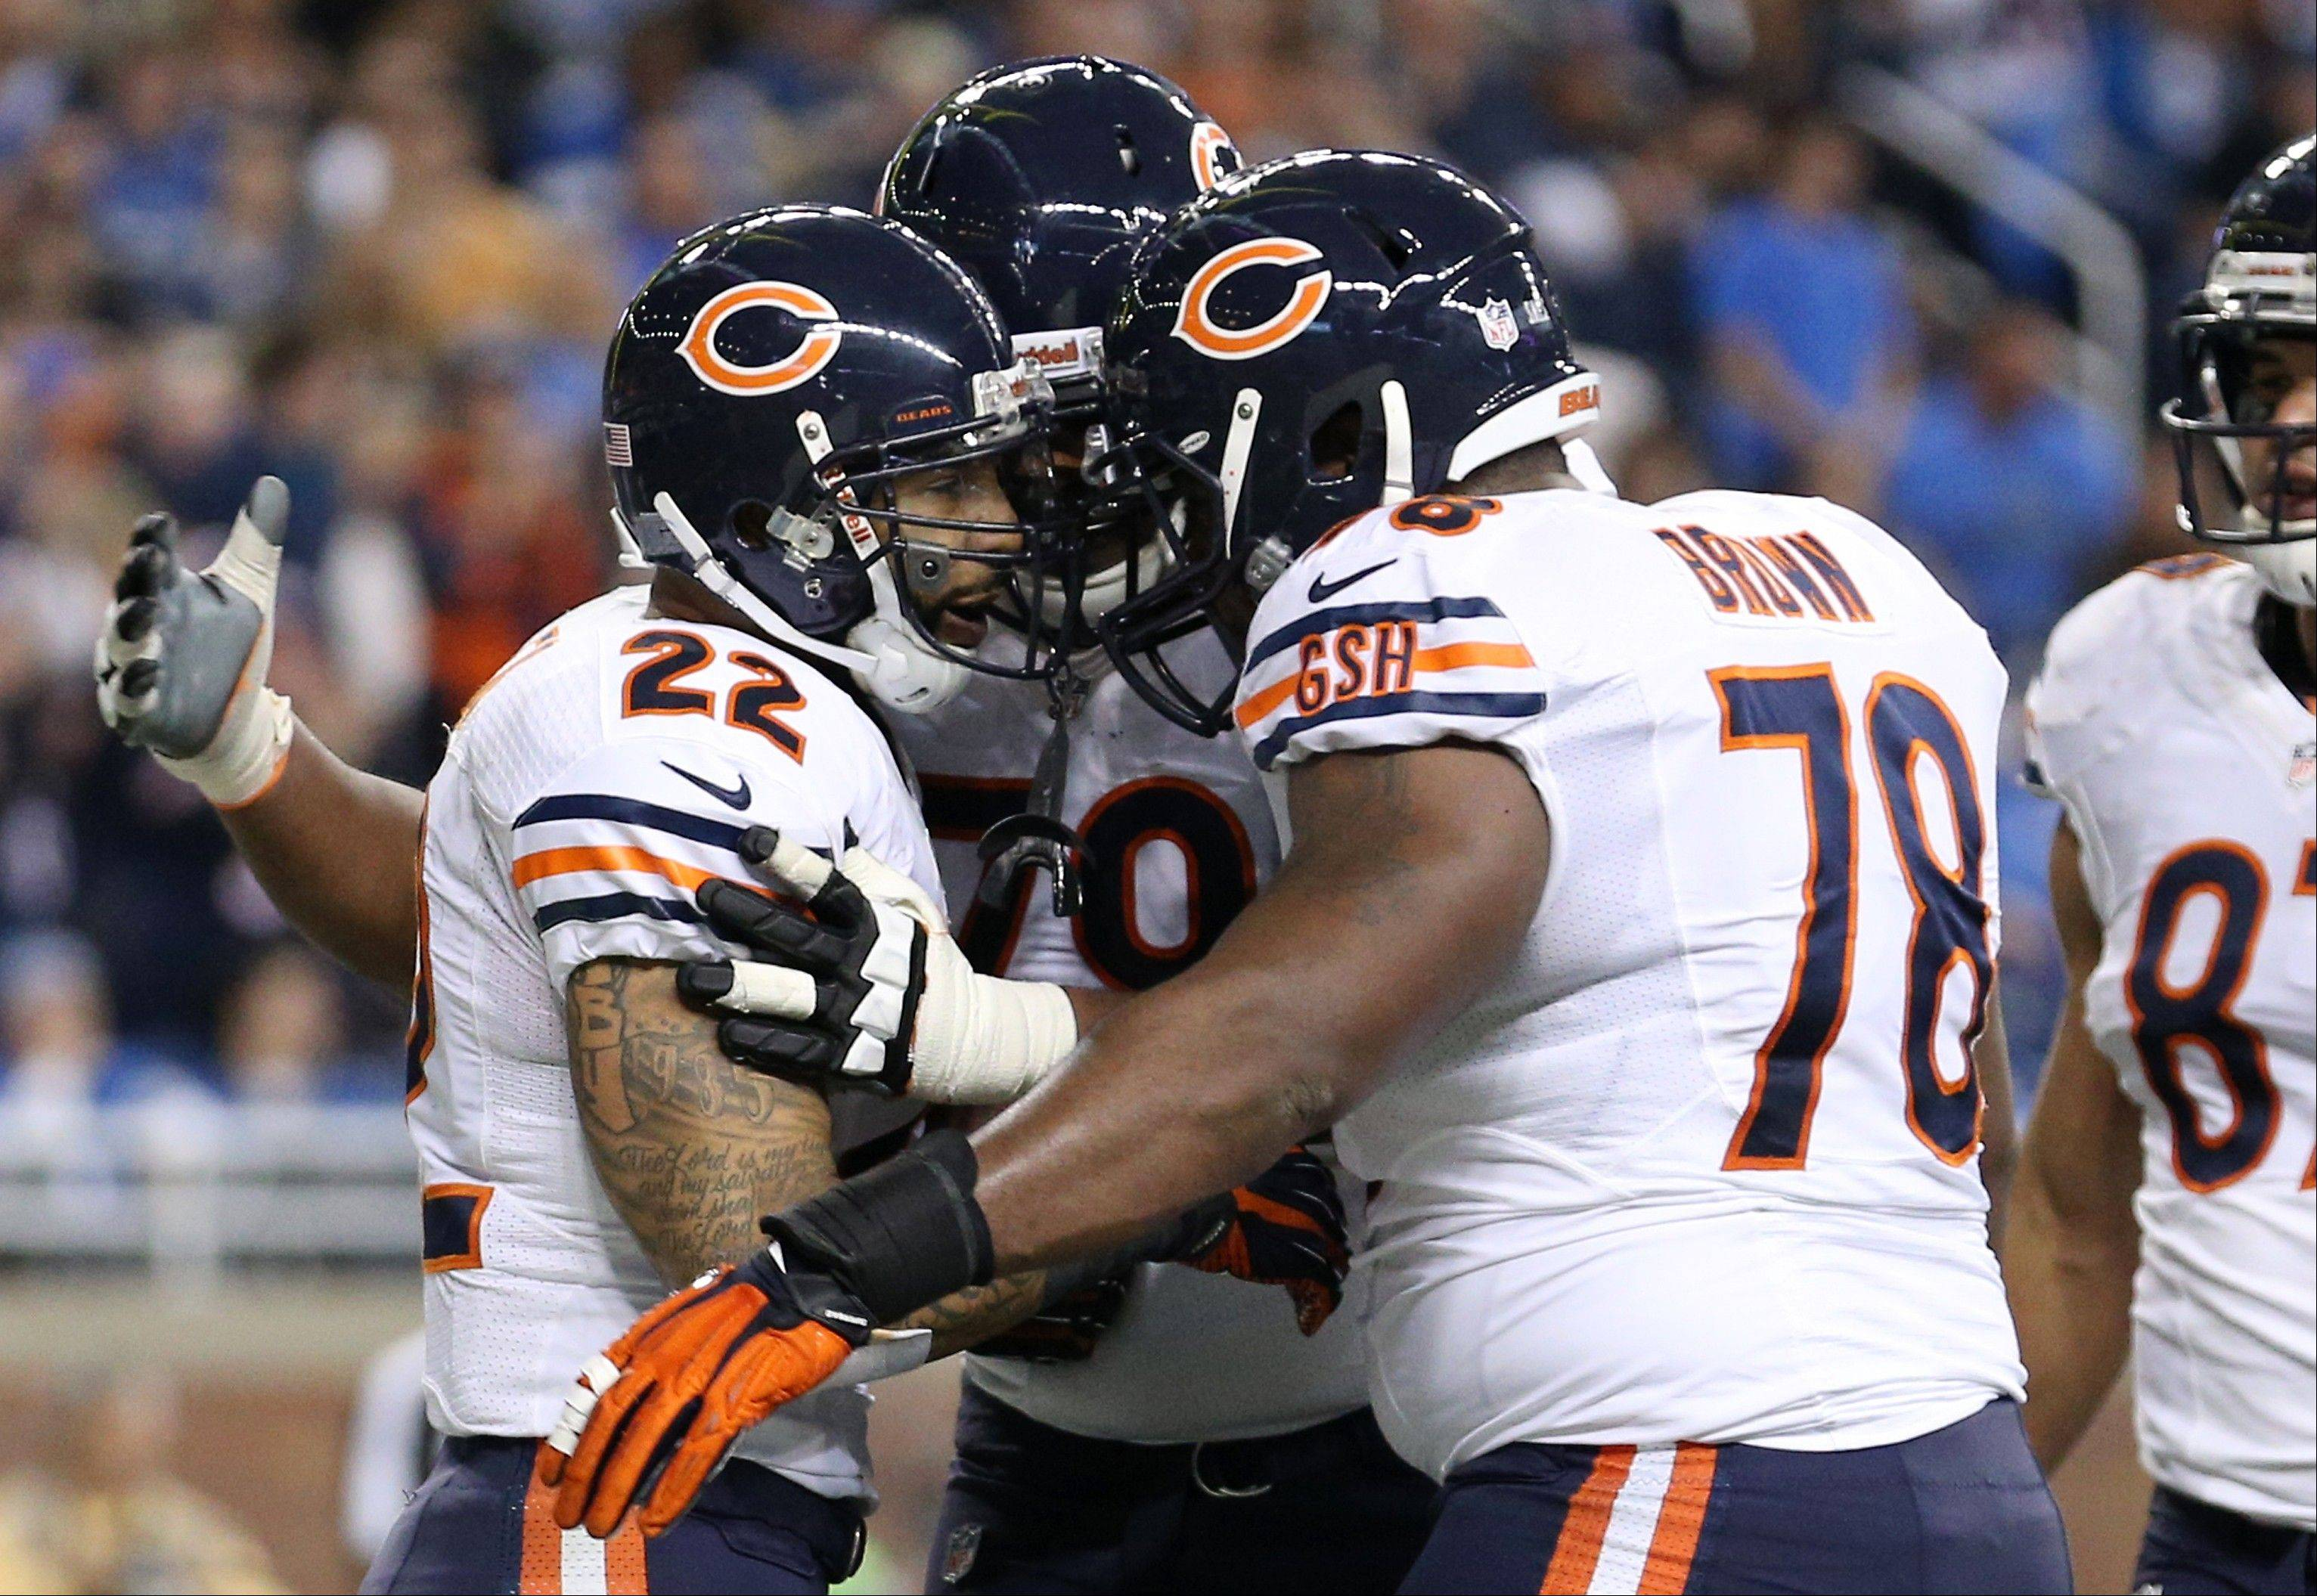 Chicago Bears running back Matt Forte (22) is congratulated by teammates after his 1-yard touchdown during the second quarter.